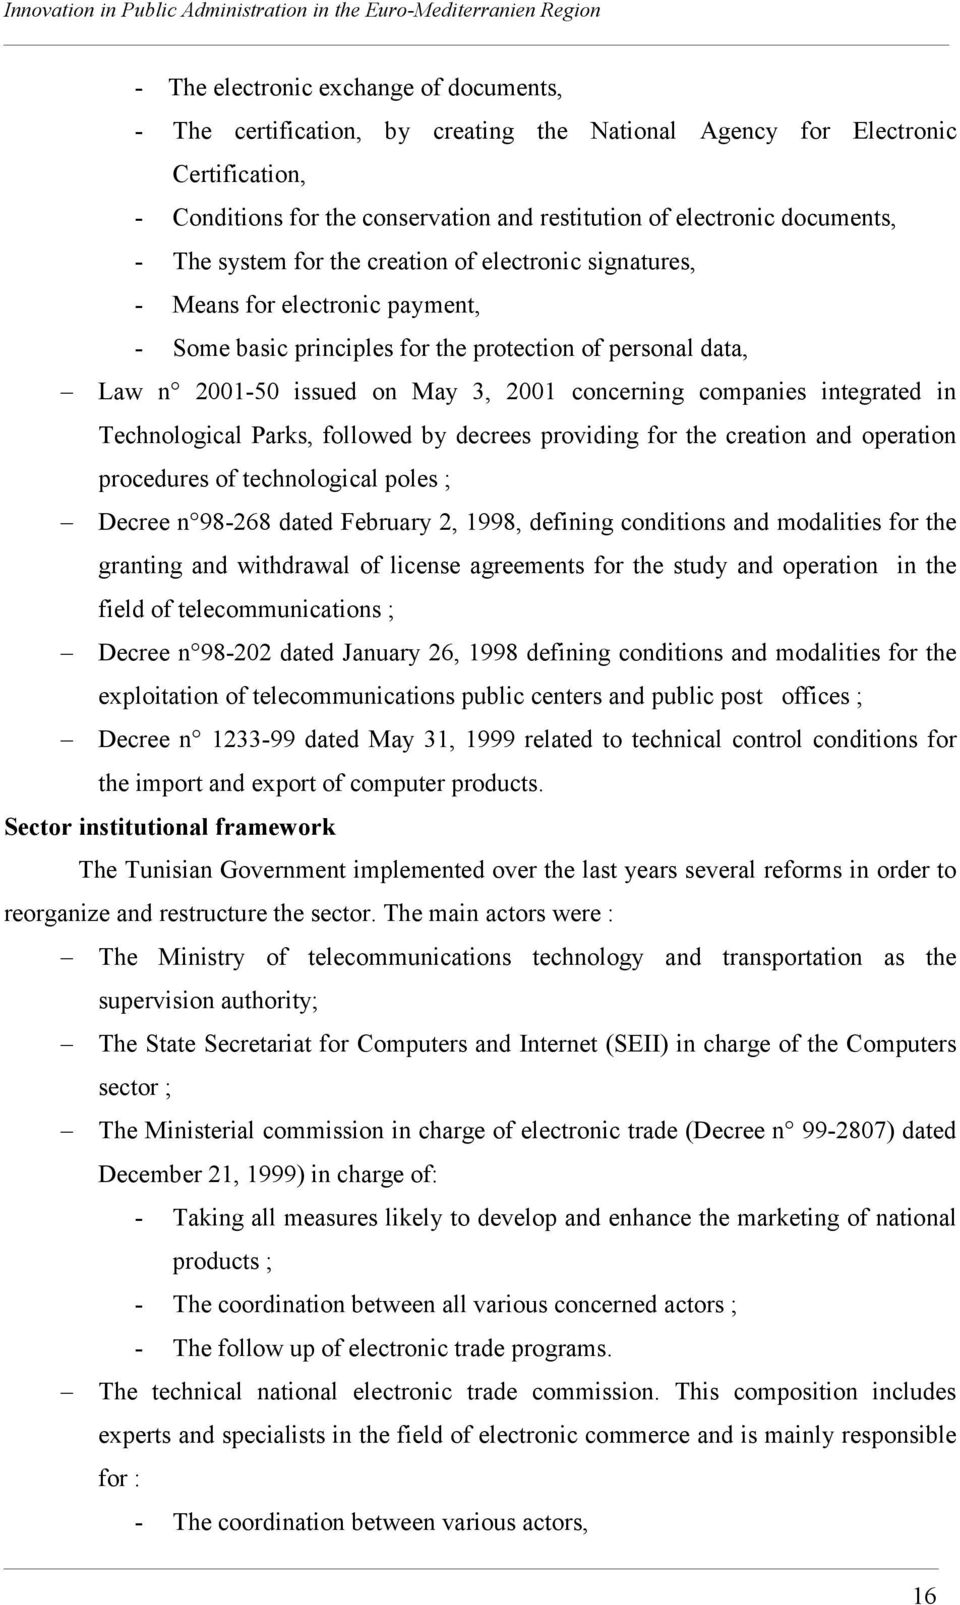 companies integrated in Technological Parks, followed by decrees providing for the creation and operation procedures of technological poles ; Decree n 98-268 dated February 2, 1998, defining